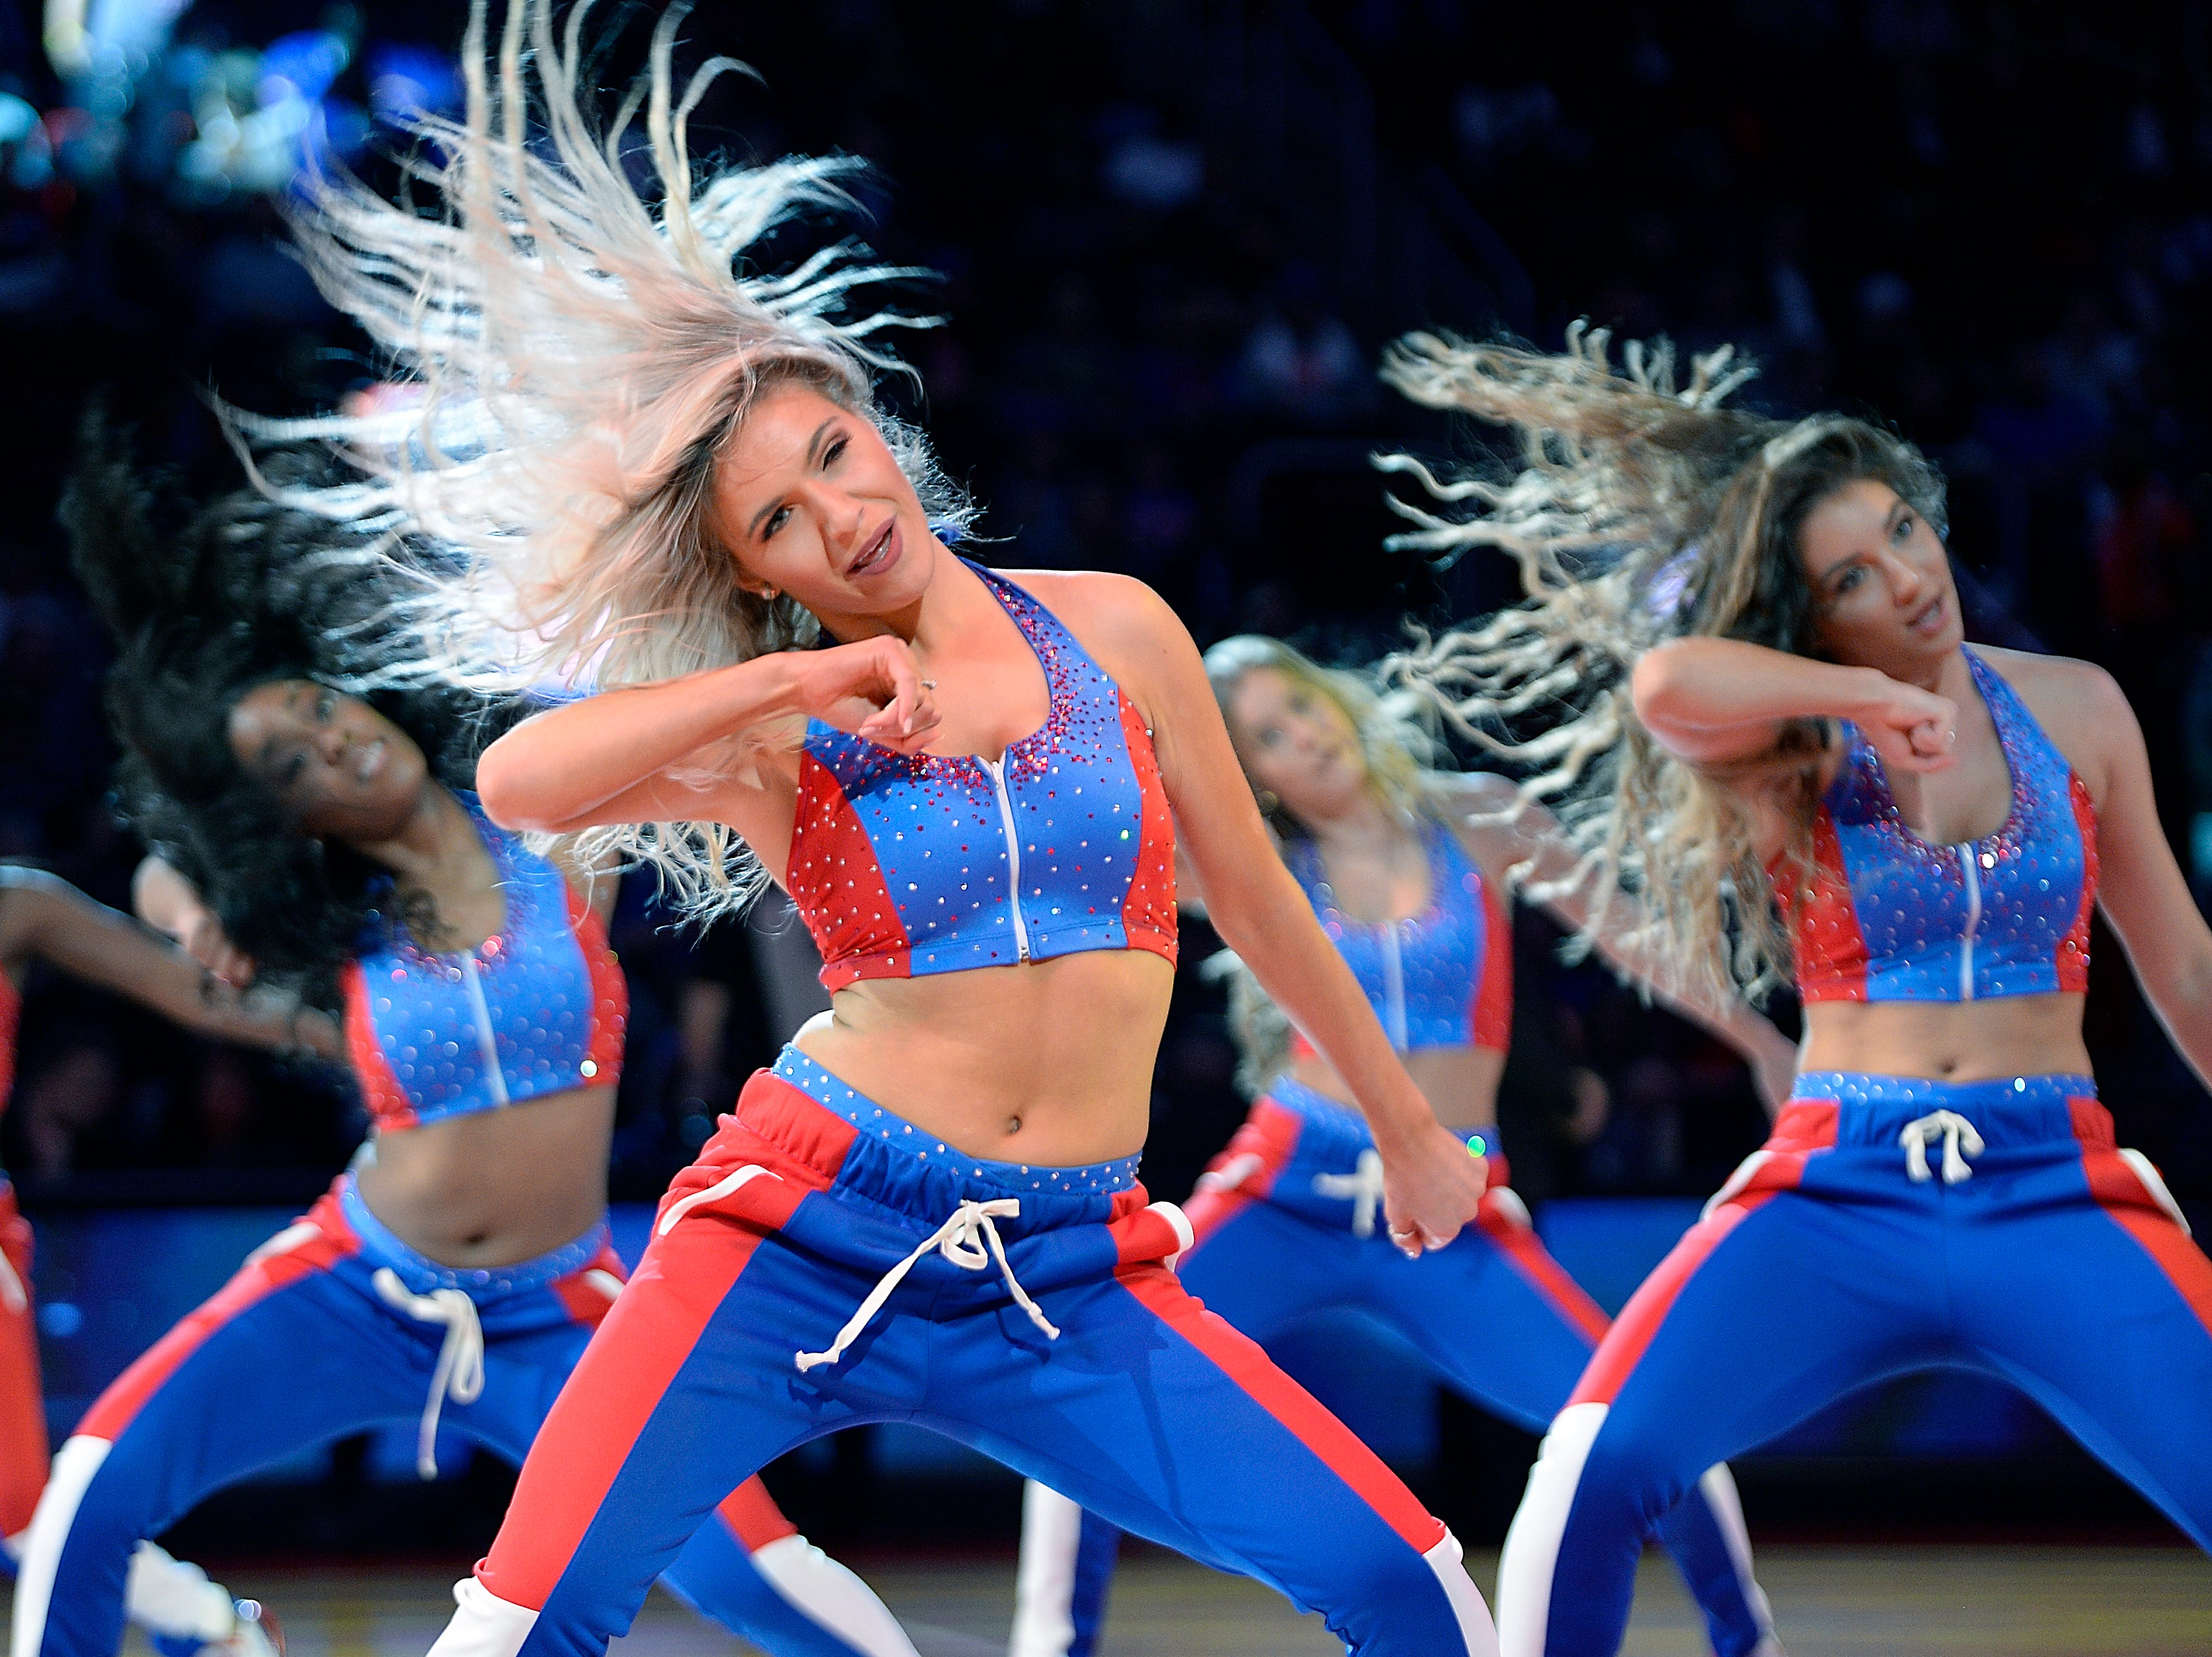 Pistons Dancers performs in the third quarter.